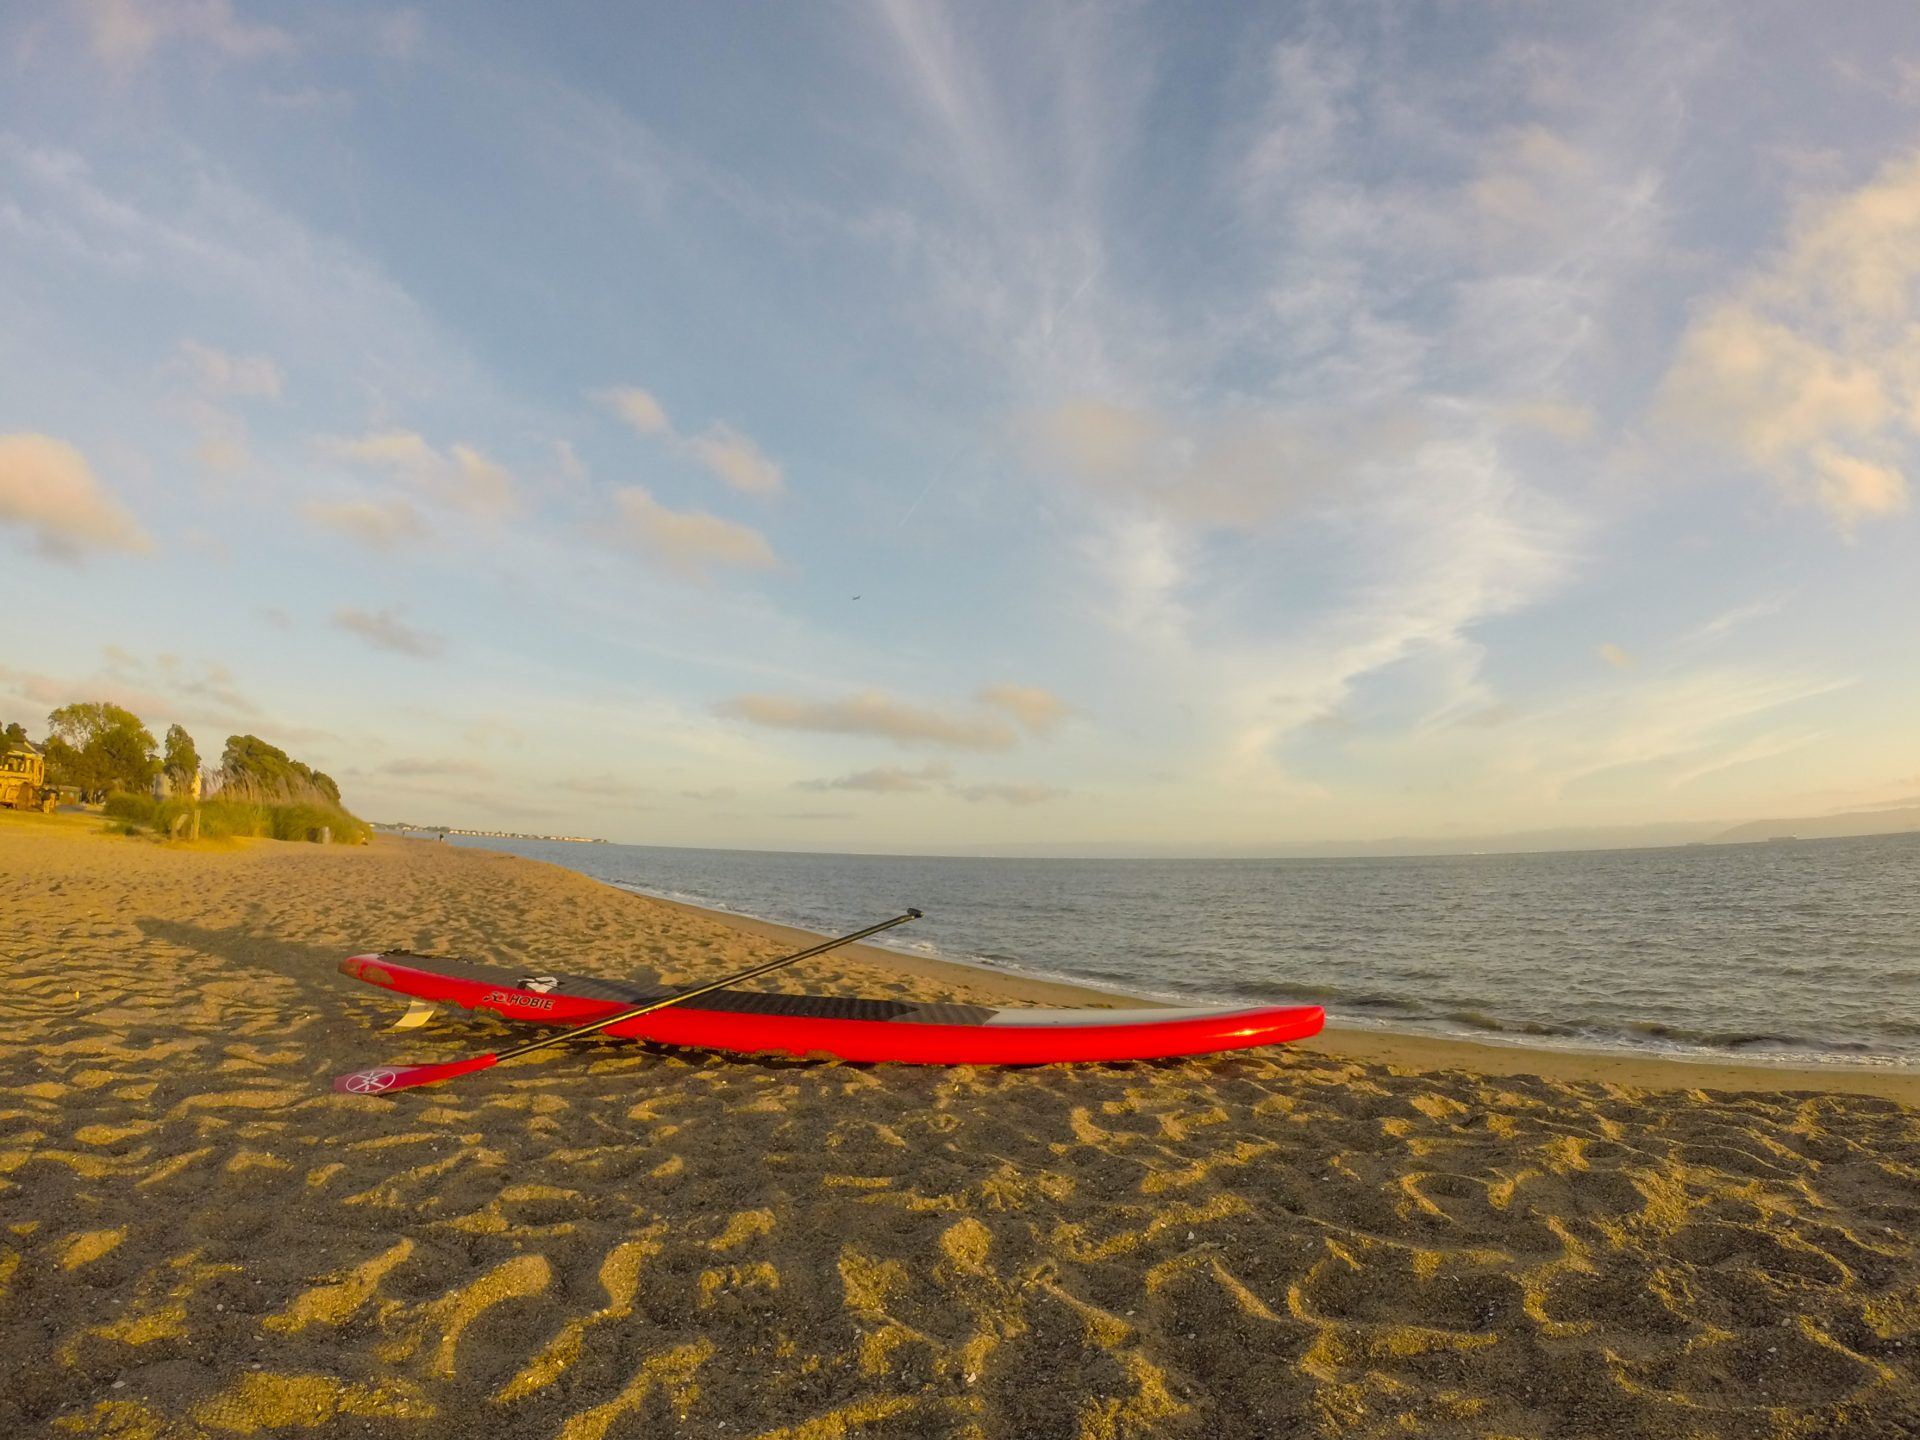 Red and black paddleboard on sandy beach